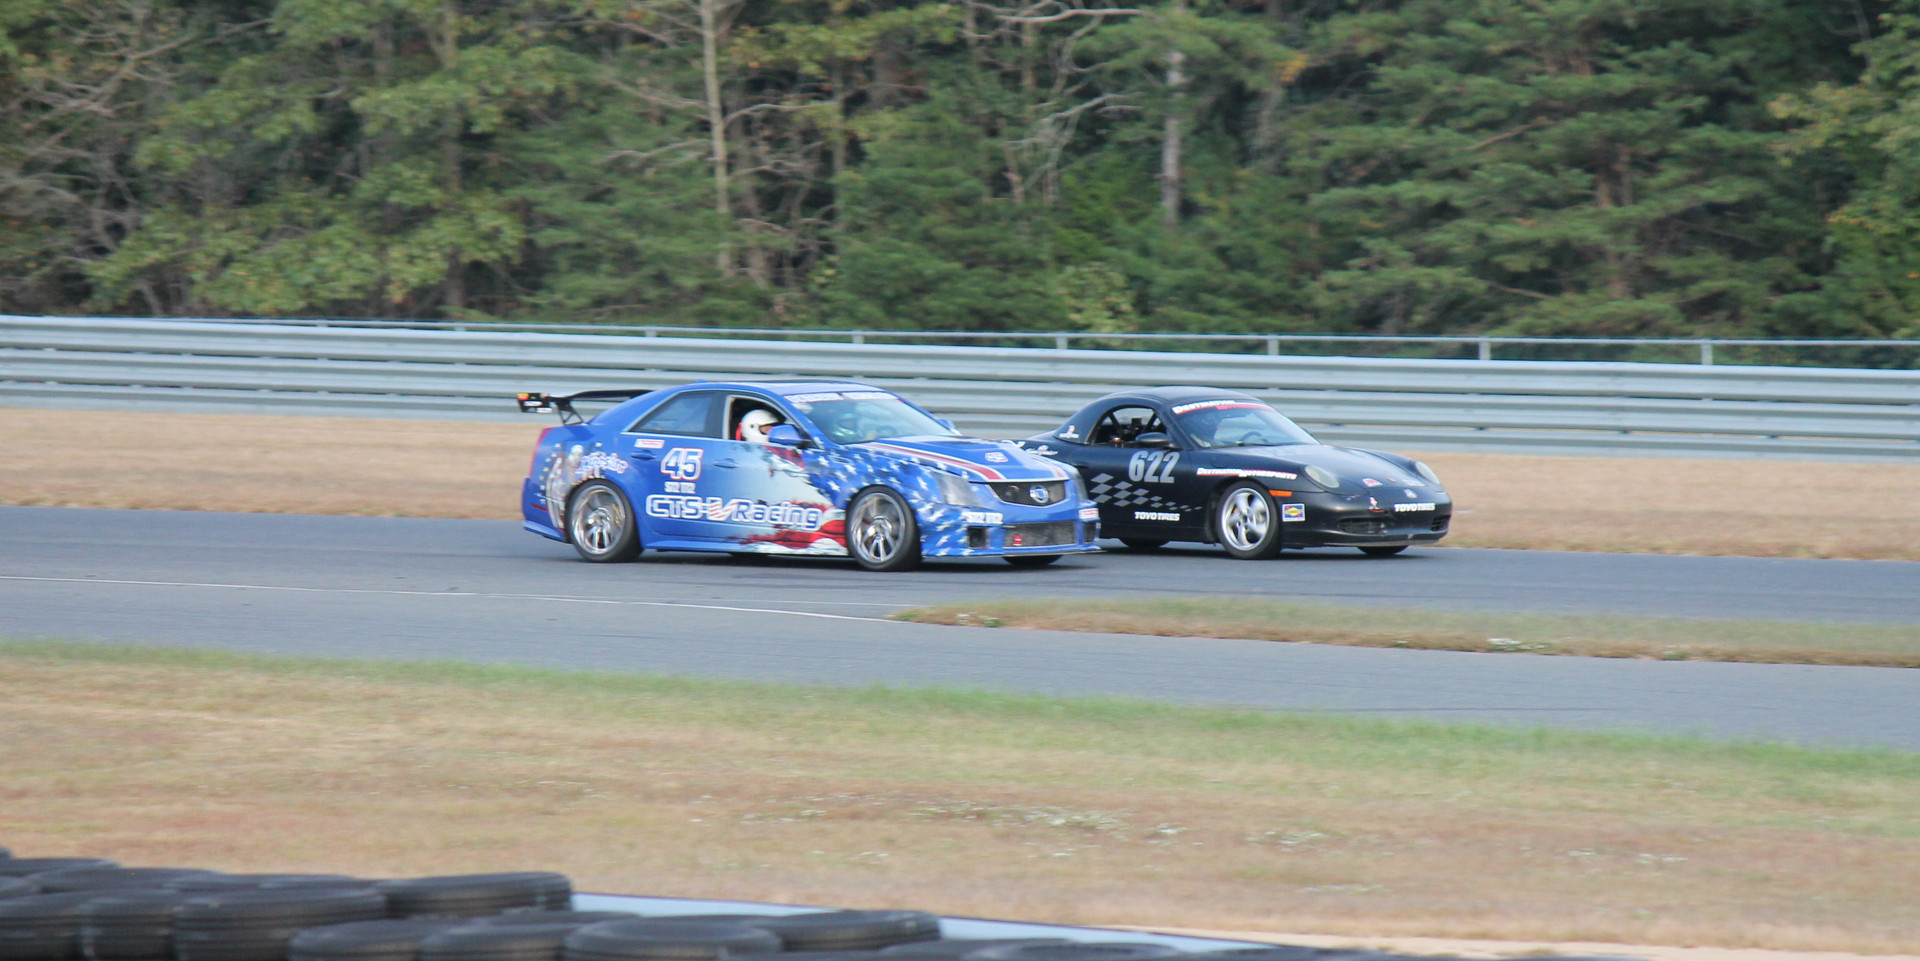 Some competition for the Patriot Missile on track at NJMP to race with PCA (10-9-2017)